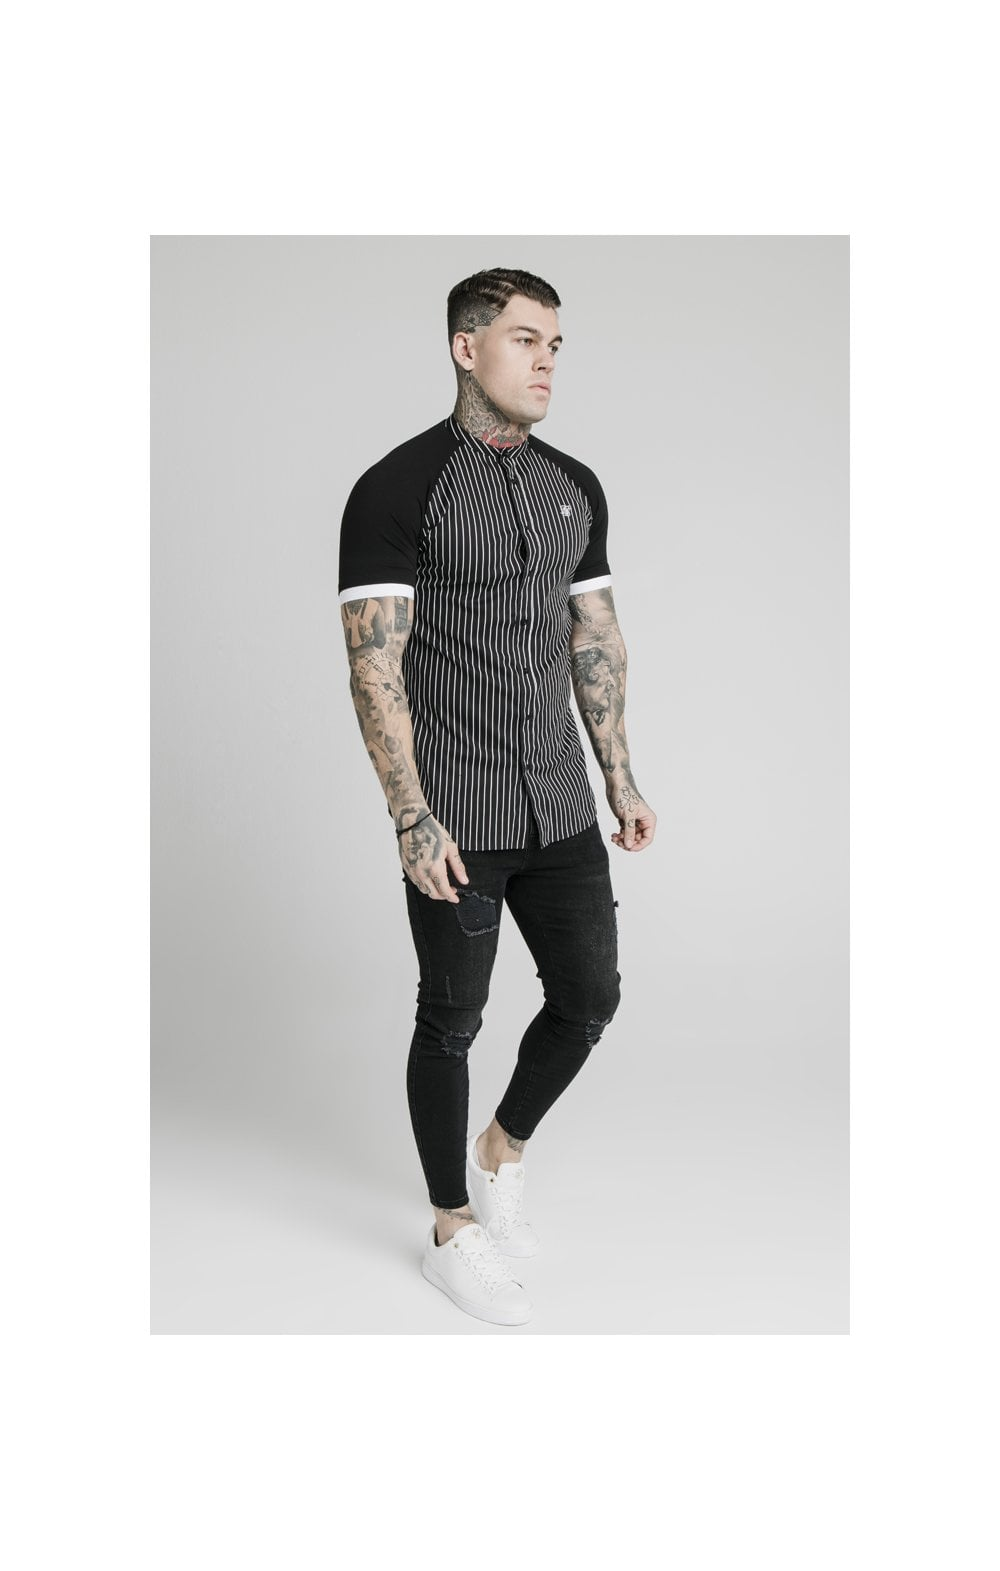 Load image into Gallery viewer, SikSilk S/S Raglan Inset Cuff  Shirt - Black & White (3)